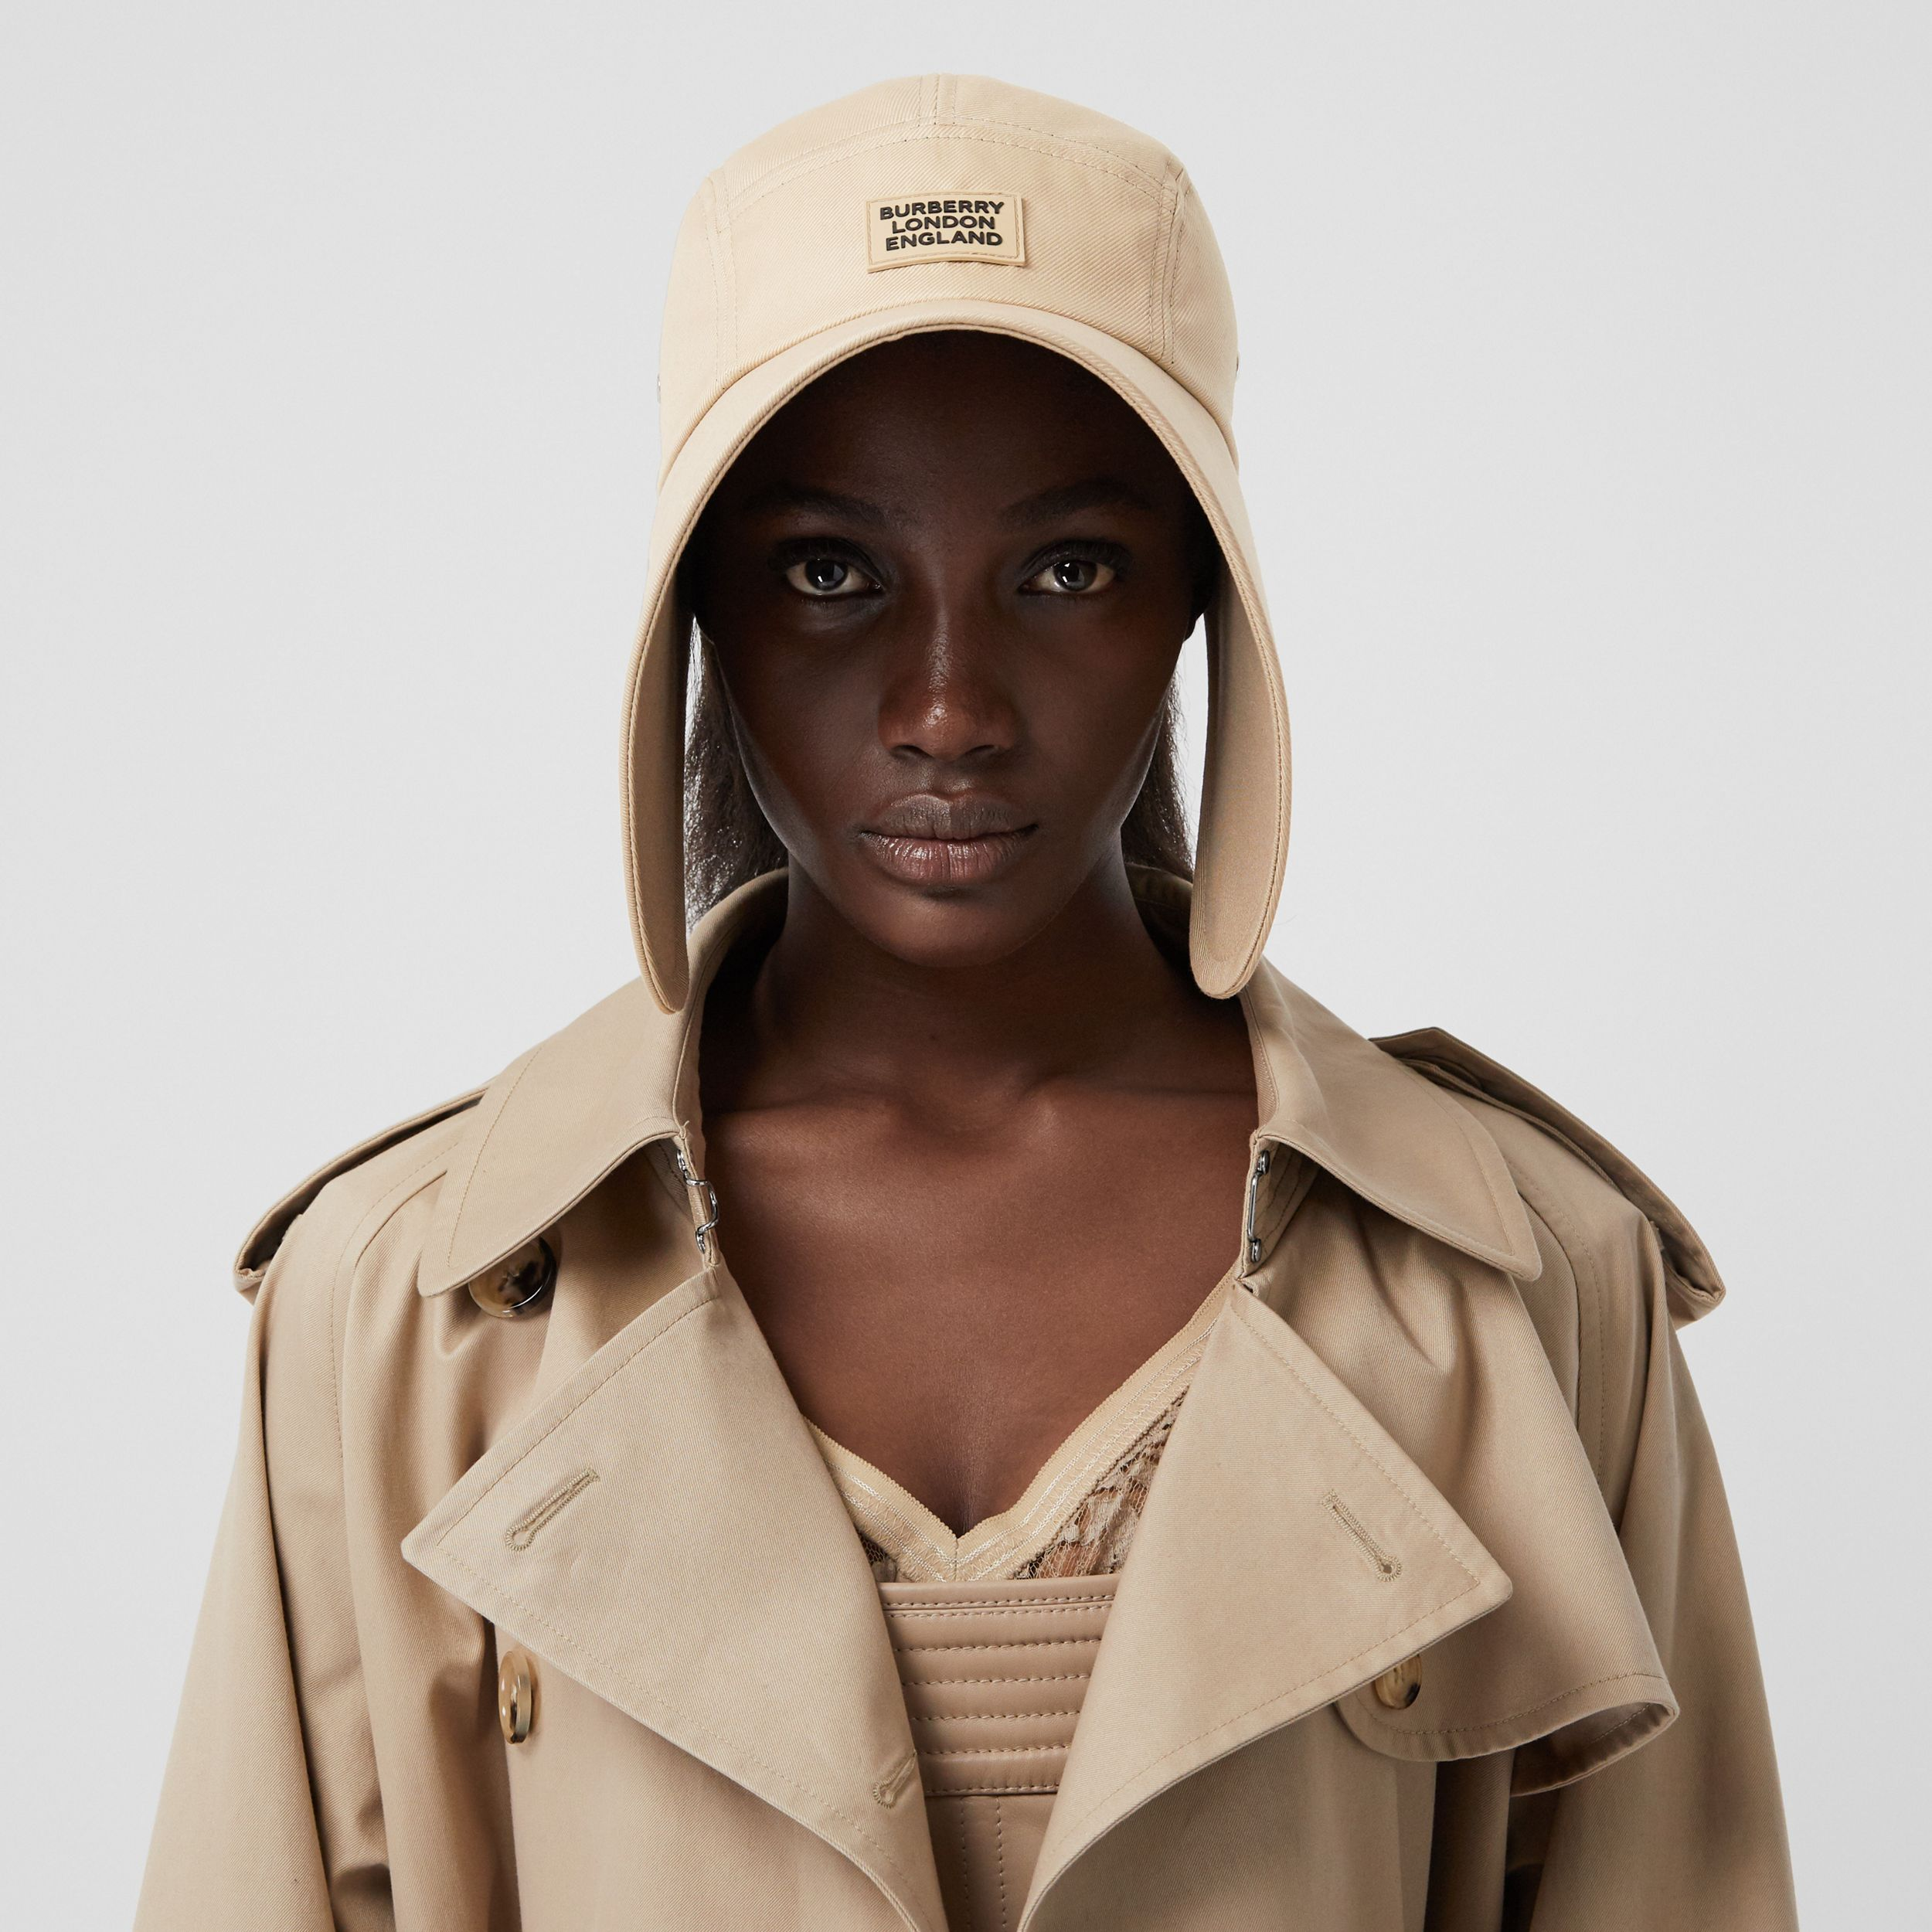 Logo Appliqué Cotton Twill Bonnet Cap in Soft Fawn | Burberry - 3